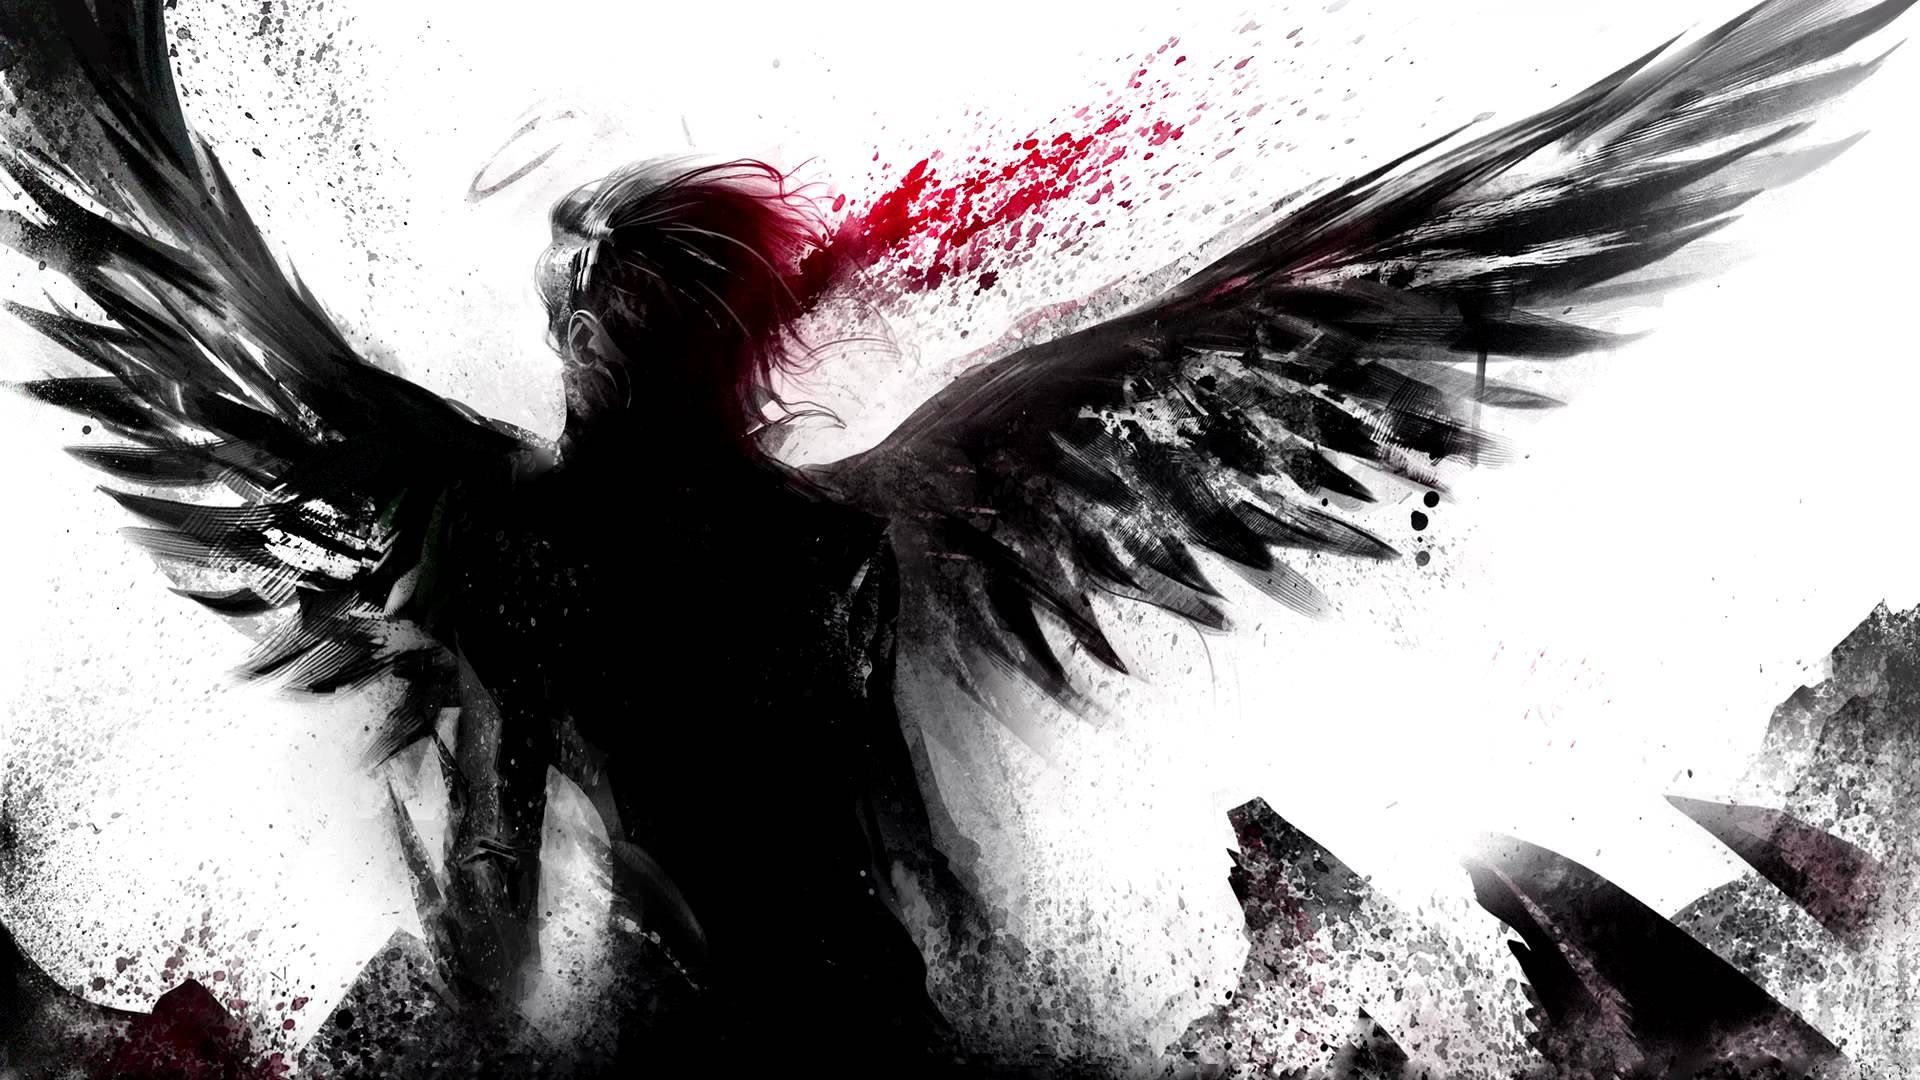 1920x1080 Free Wallpaper And Screensavers For Celldweller Angel Wallpaper Anime Fallen Angel Angel Drawing